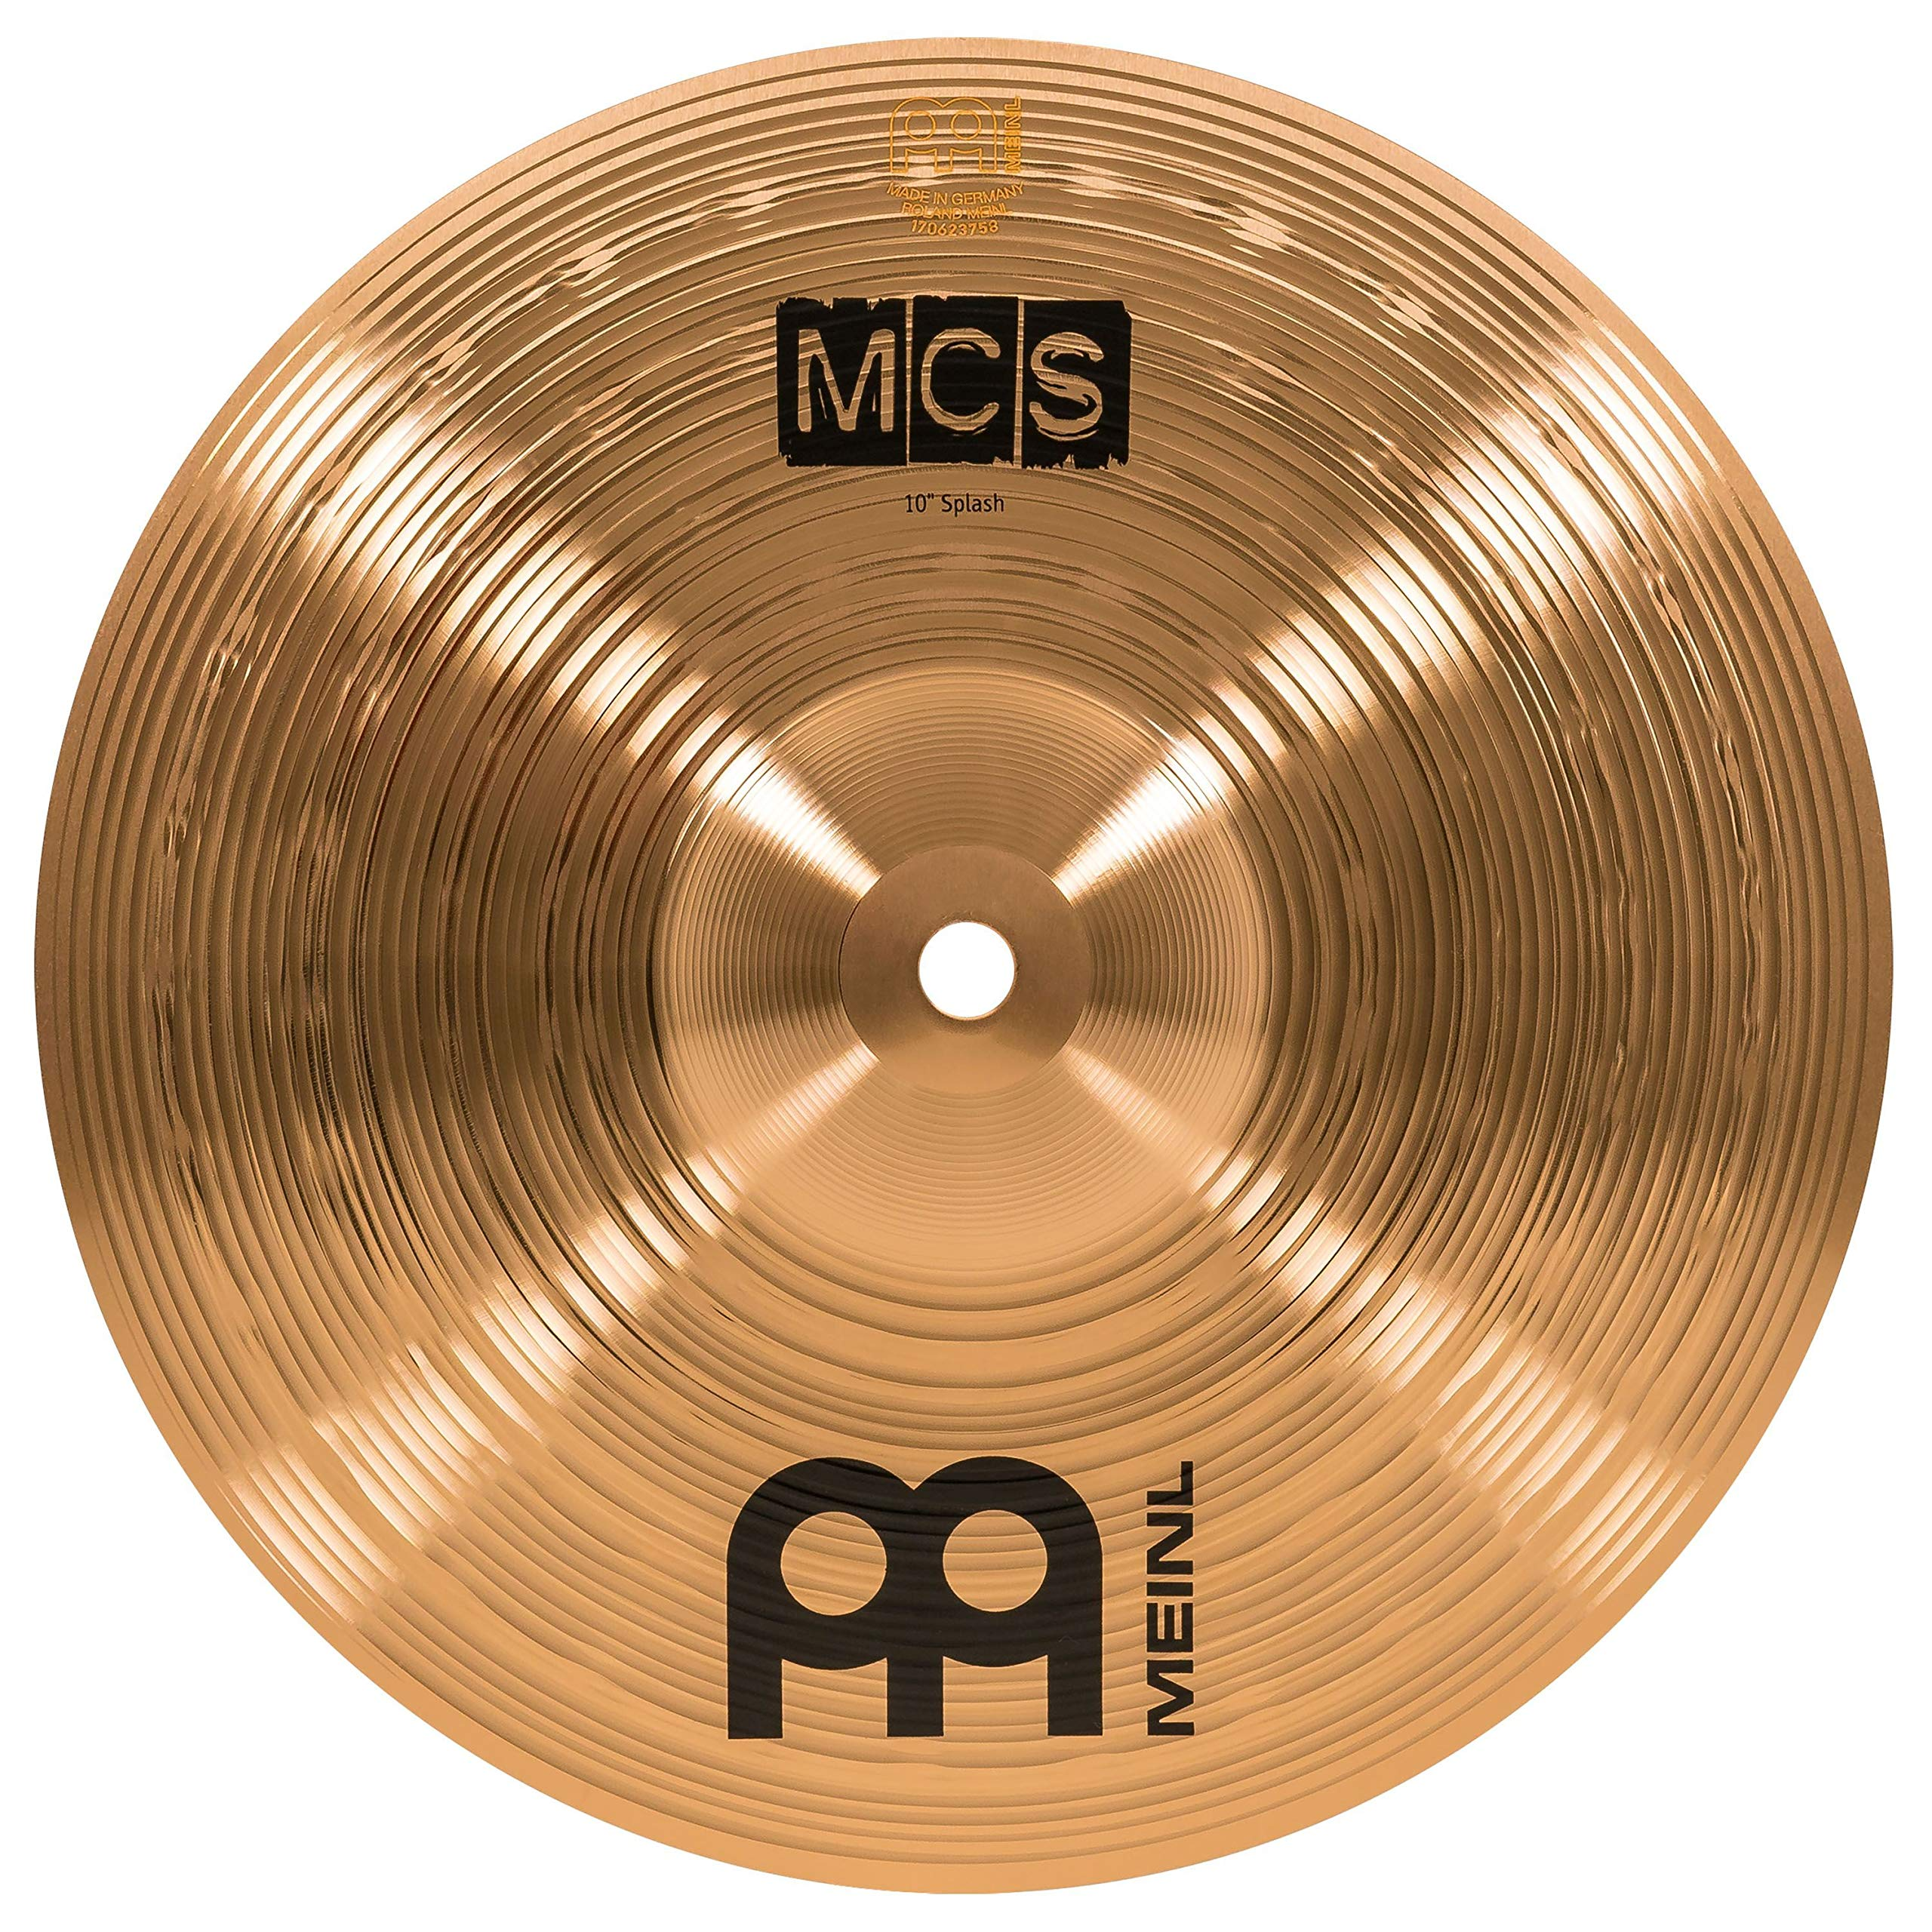 Meinl 10'' Splash Cymbal - MCS Traditional Finish Bronze for Drum Set Use, Made In Germany, 2-YEAR WARRANTY (MCS10S)